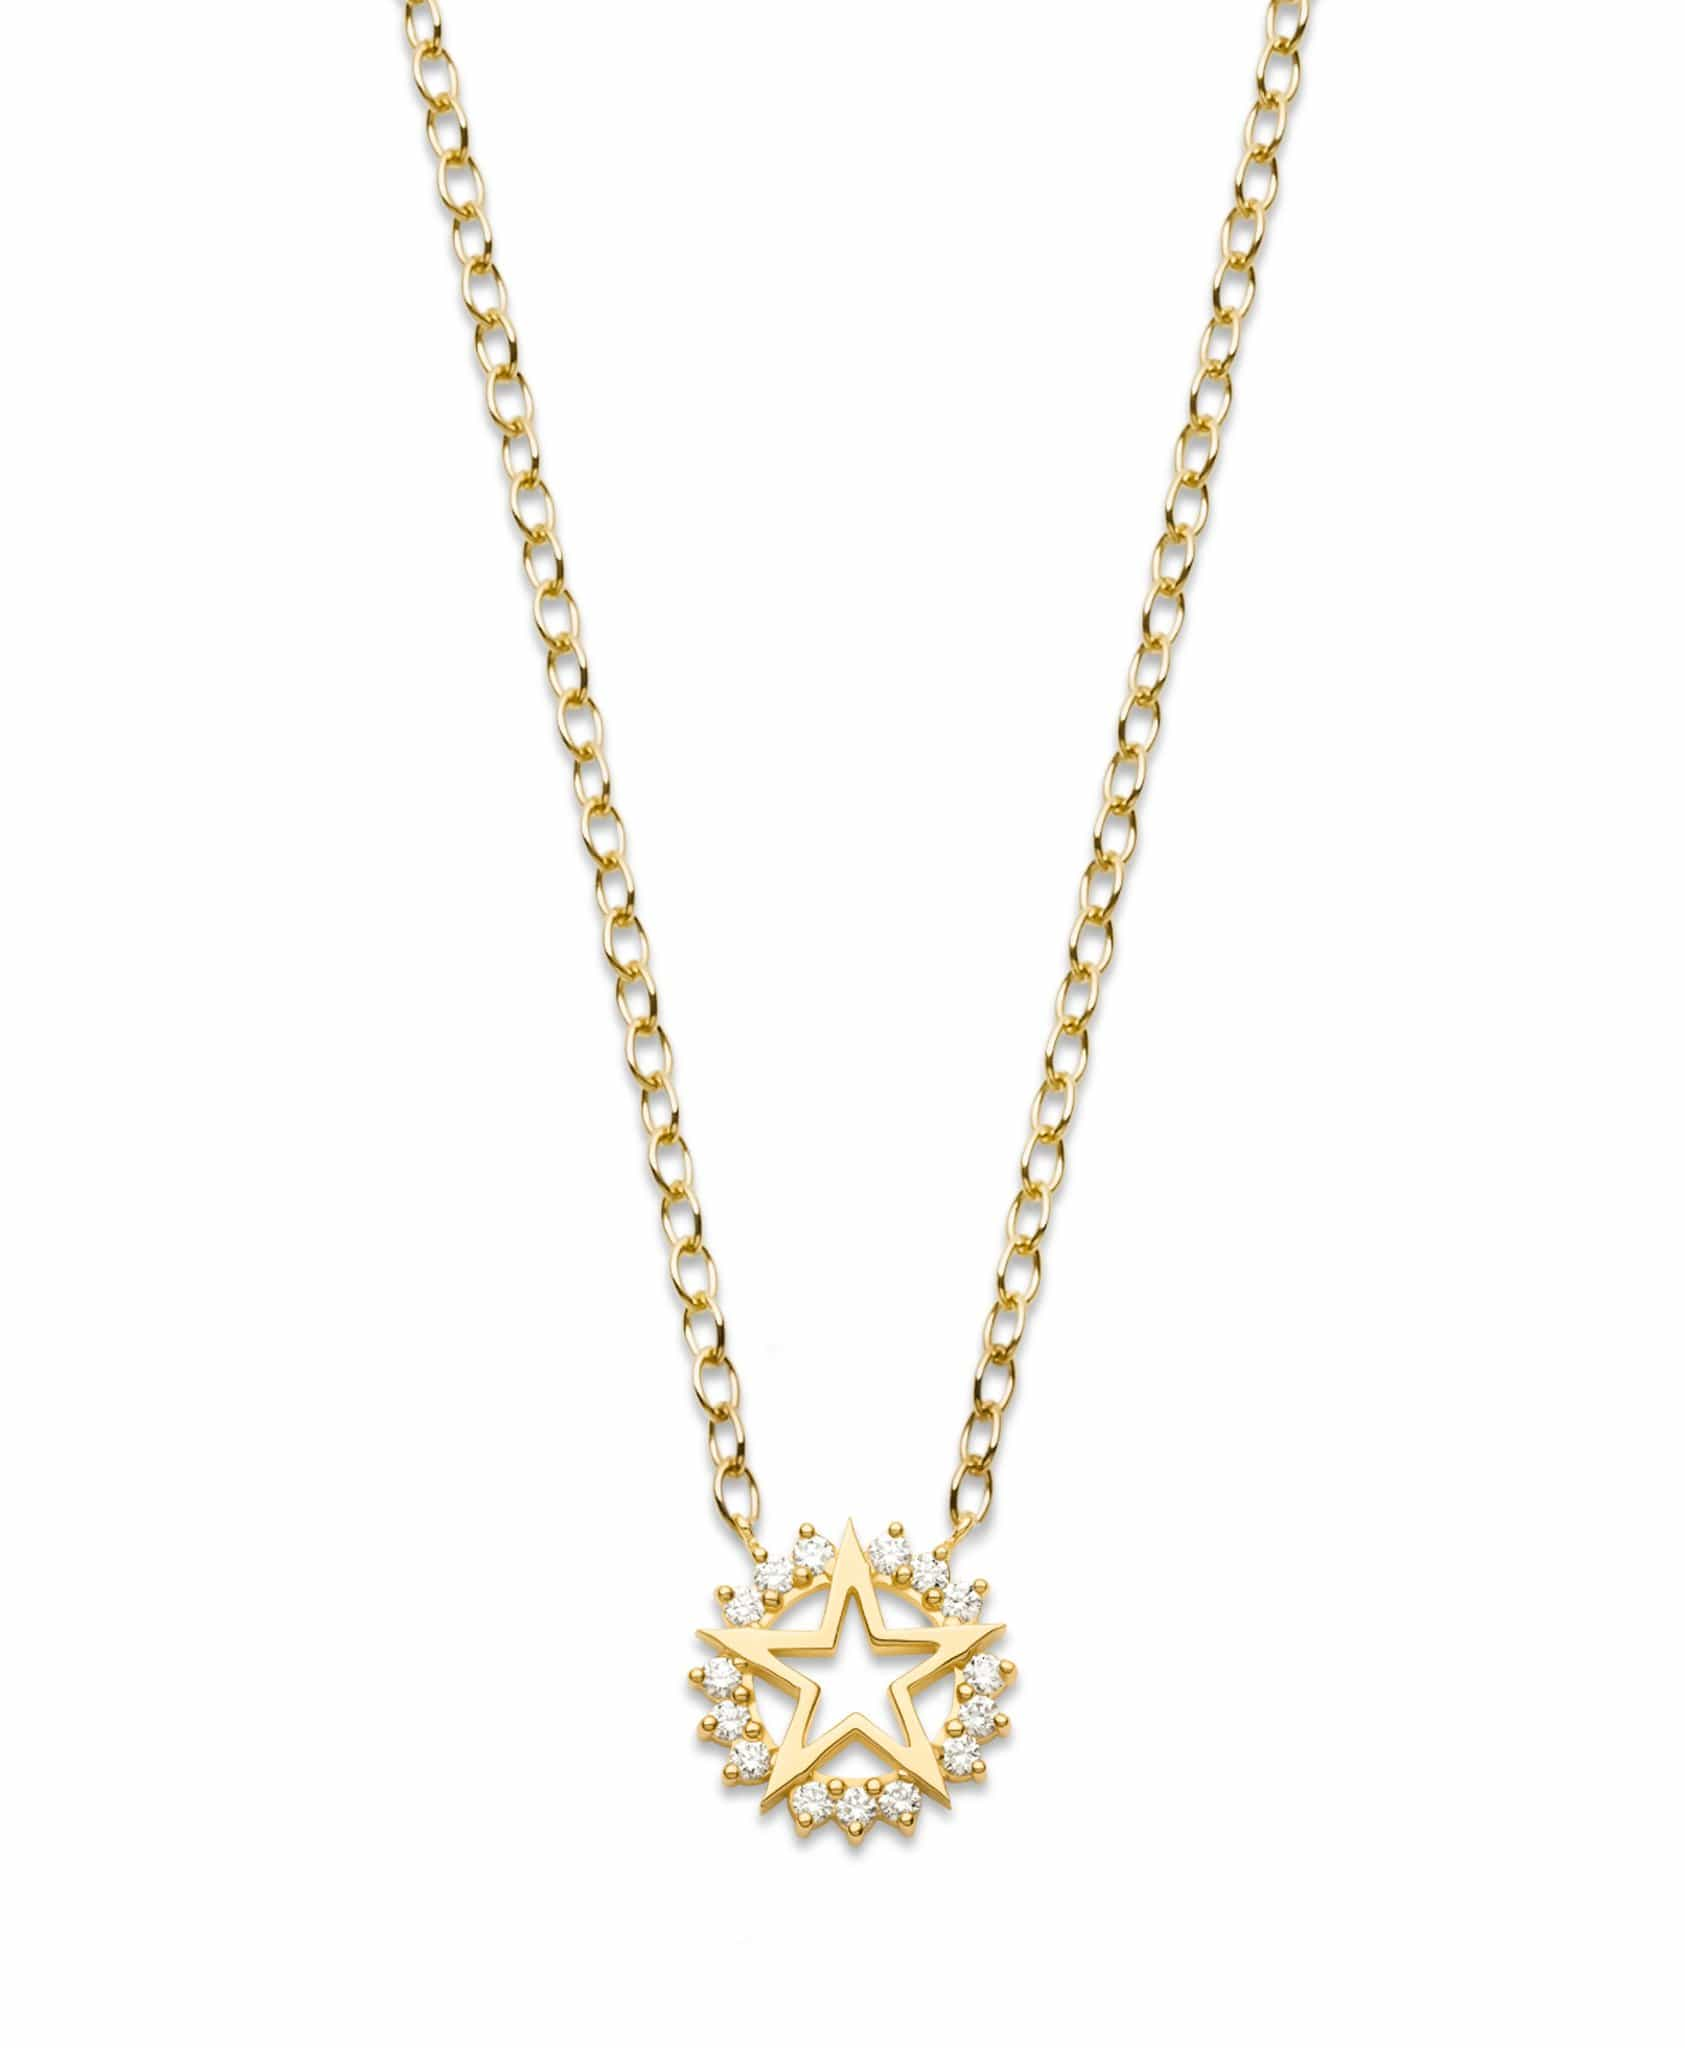 Medium Star Pendant: Discover Luxury Fine Jewelry | Nouvel Heritage